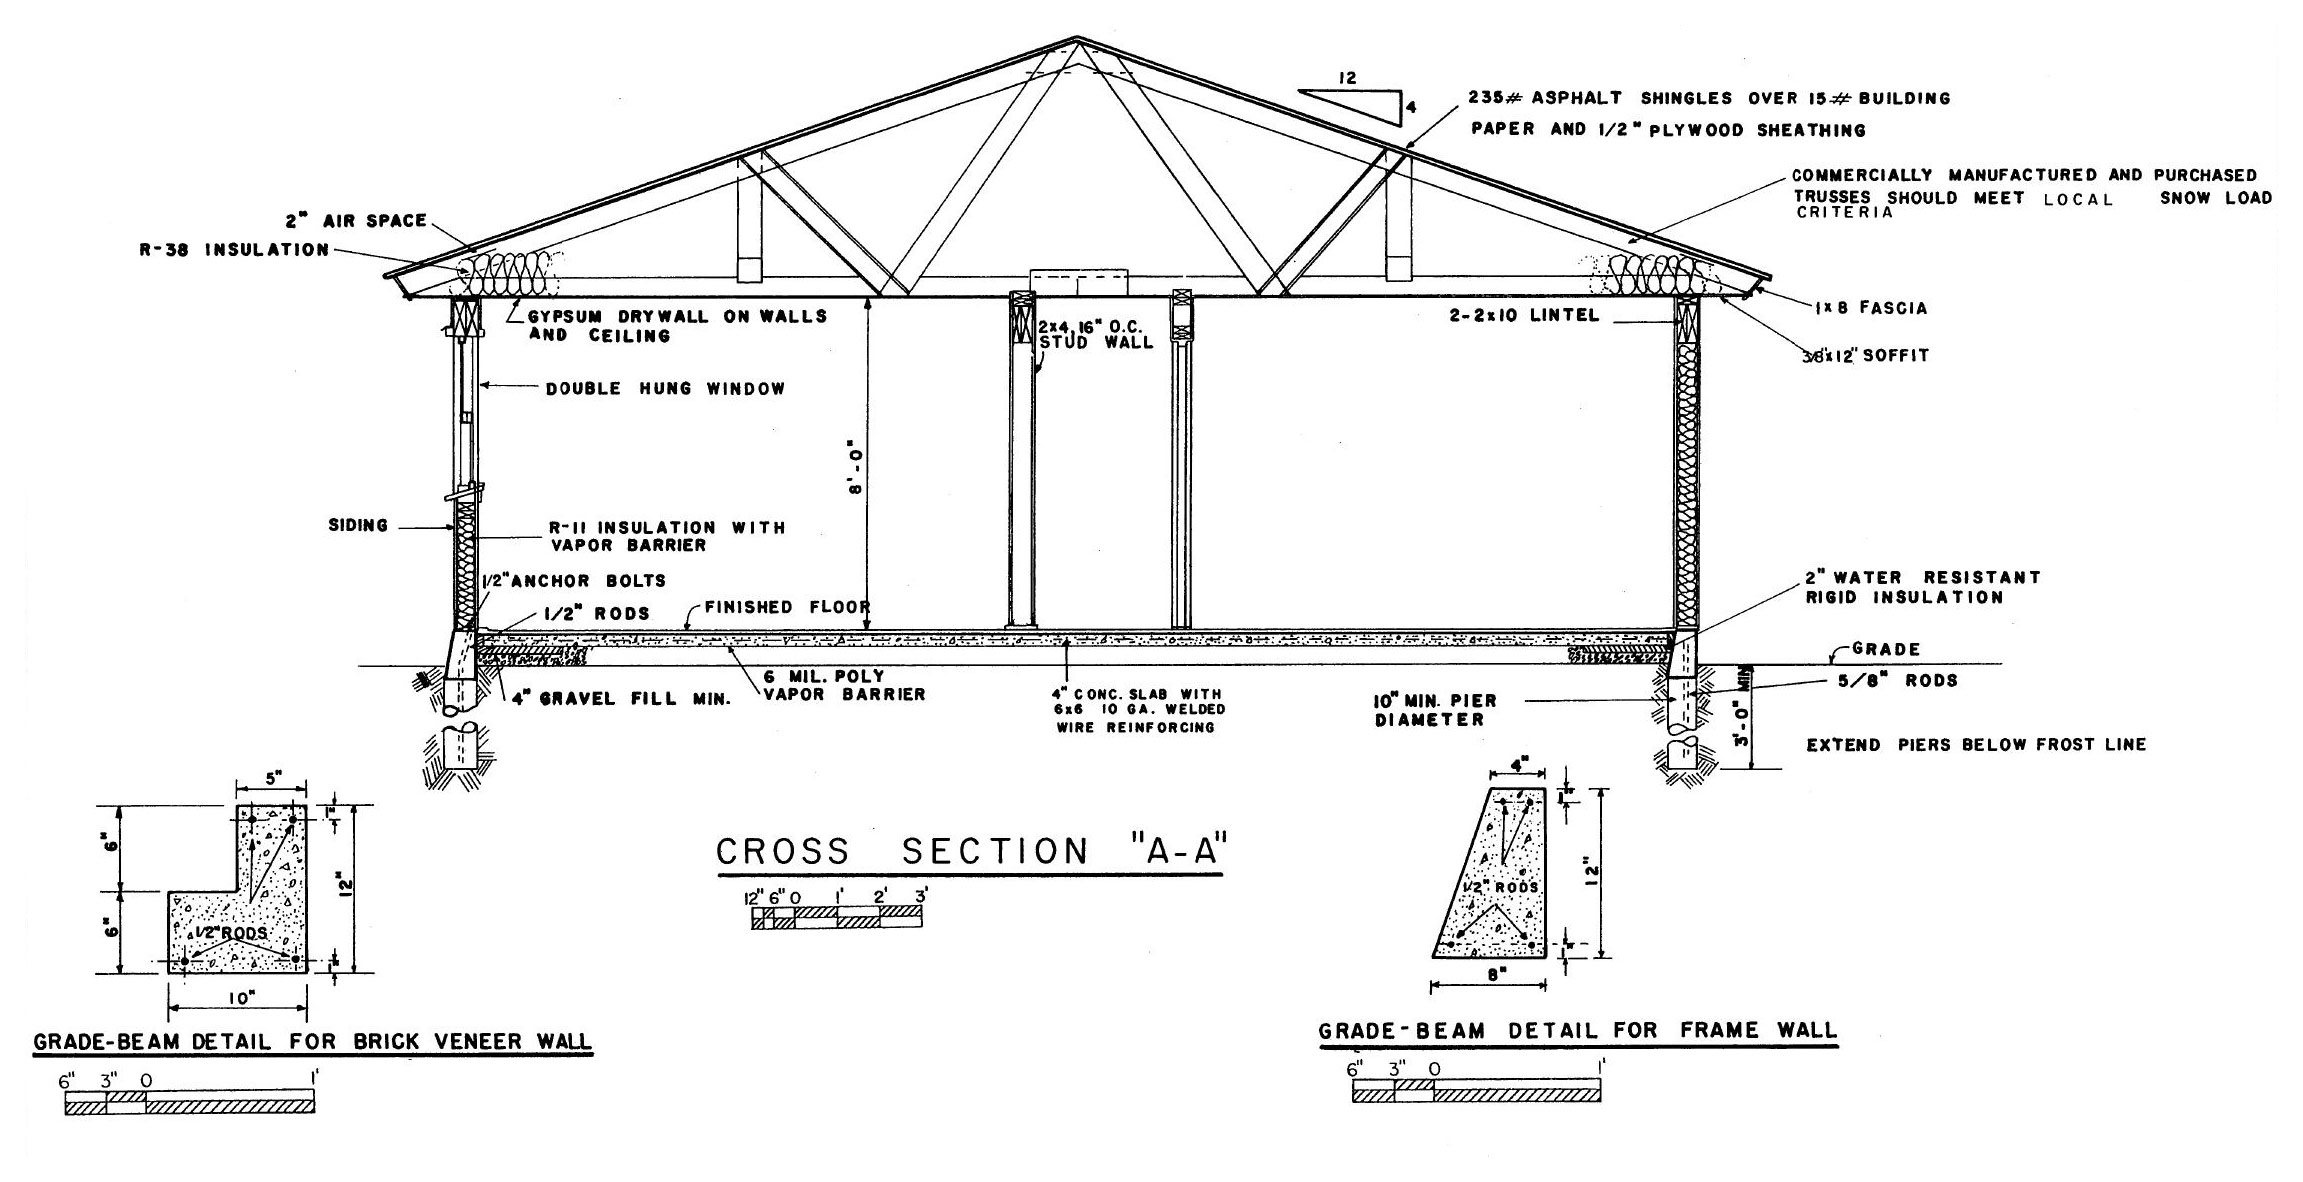 house plans with crawl space foundation html with Ranch House Plan 3 Bedroom With Carport 7161 on 3ae30a882a6d3b7a Landscaping Ideas For A Small Ranch Style House Ranch Style Home Landscaping Ideas additionally House Plan 4258 D The DURHAM D as well Bedroom Addition Project besides House Foundation Piers as well Oth how Build Add 1.